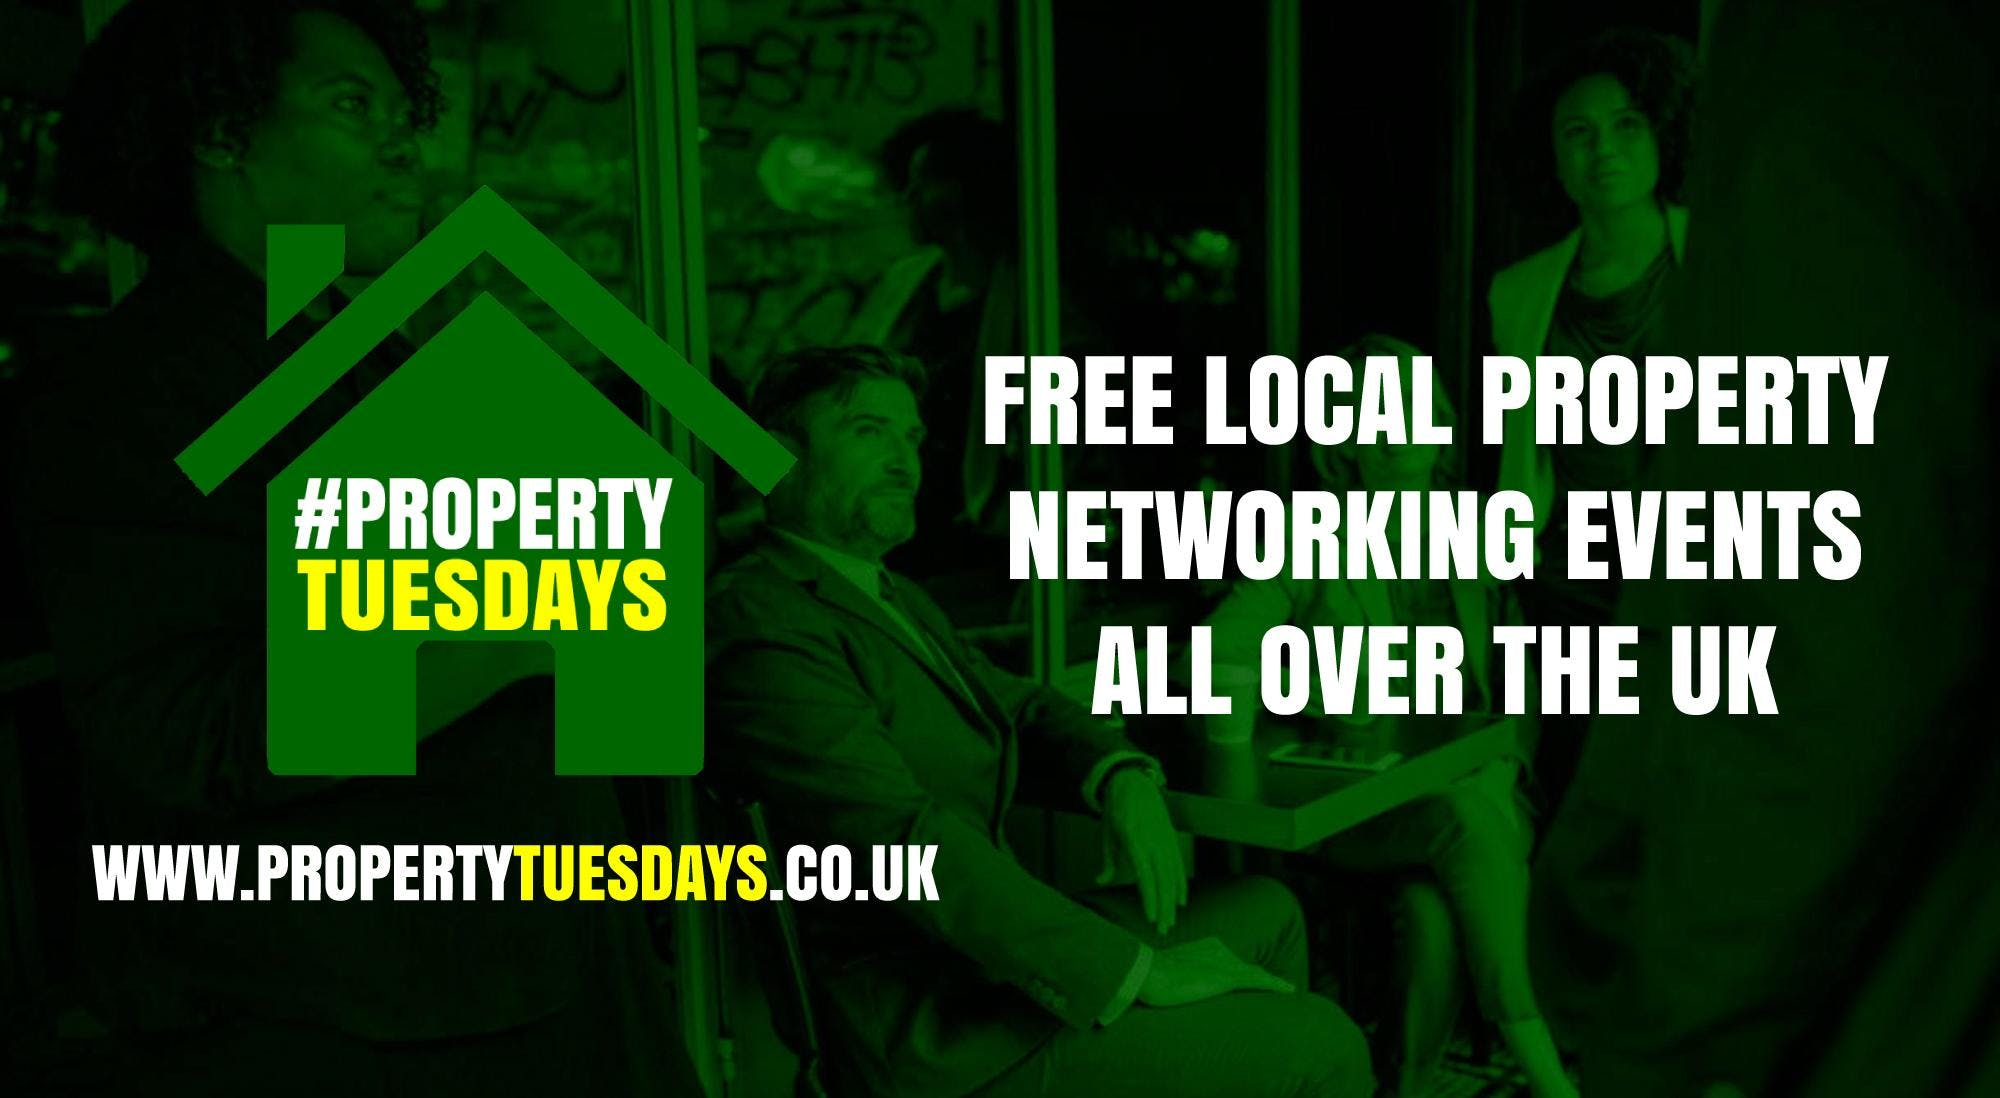 Property Tuesdays! Free property networking event in Beeston